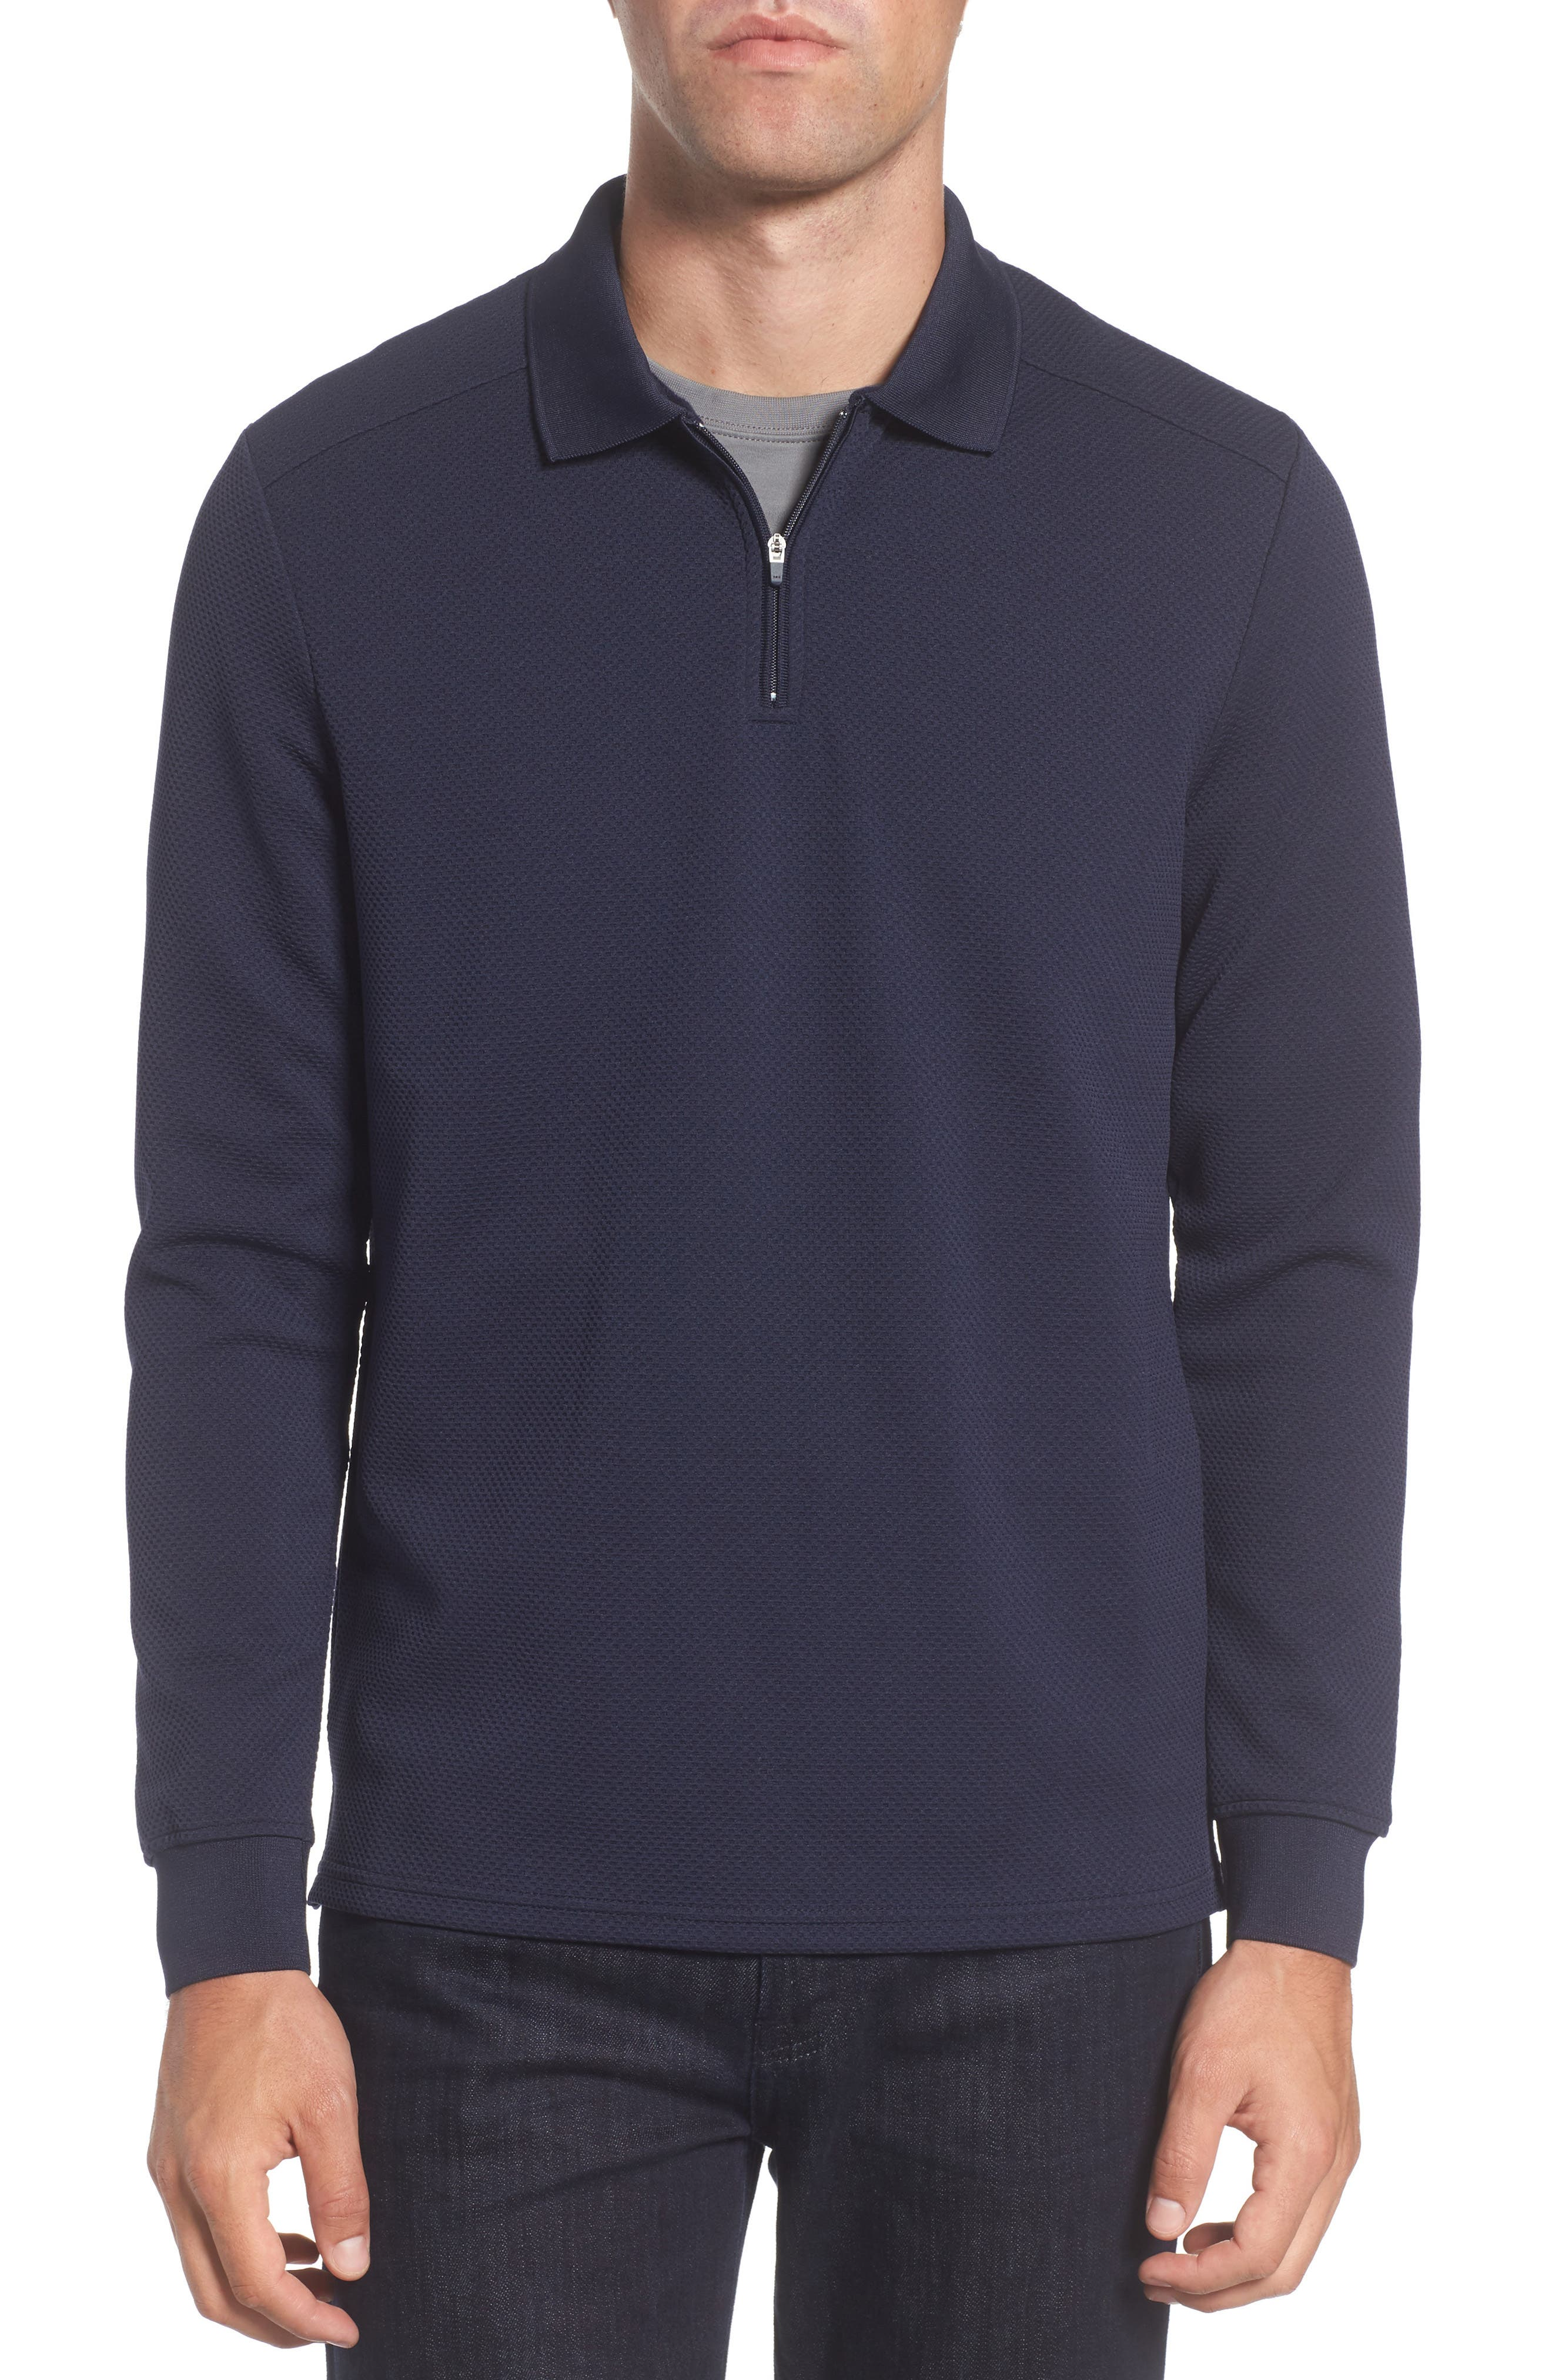 Alternate Image 1 Selected - Vince Camuto Slim Fit Quarter Zip Mesh Polo